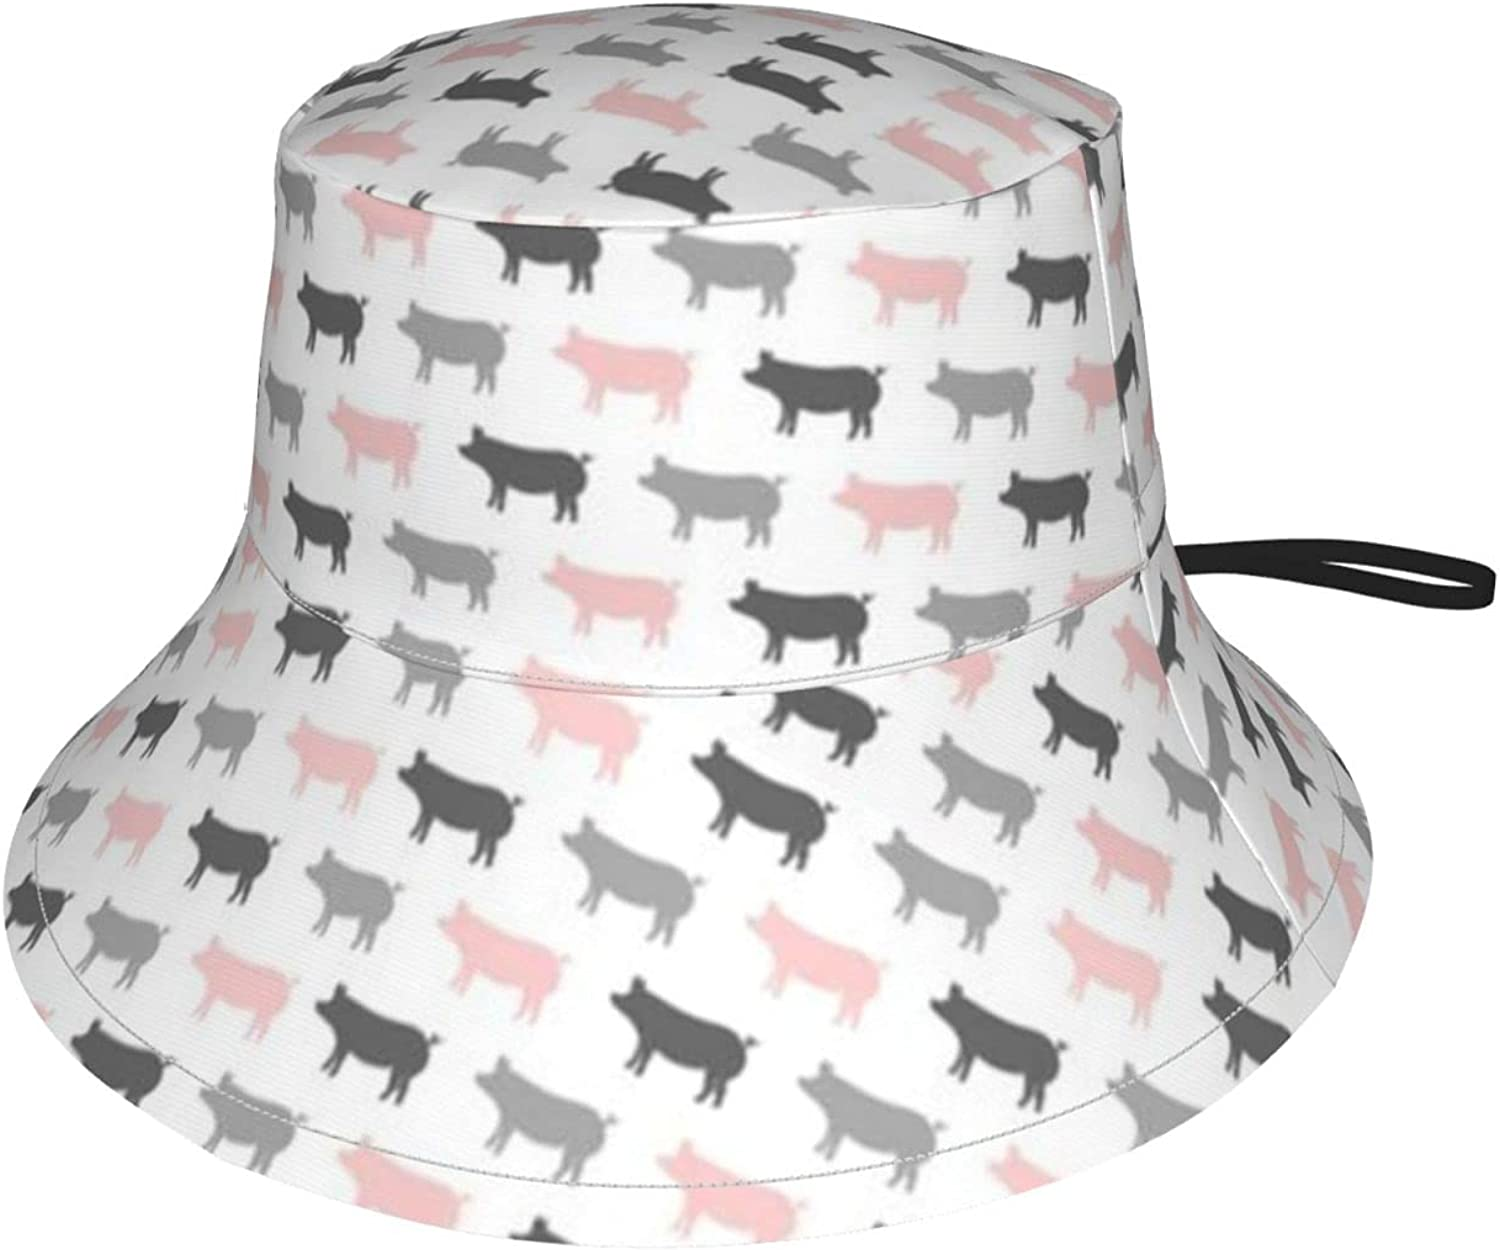 Multi OFFicial site Colored Pigs Kids Sun Atlanta Mall Breathable Fis Upf50+ Bucket Hat